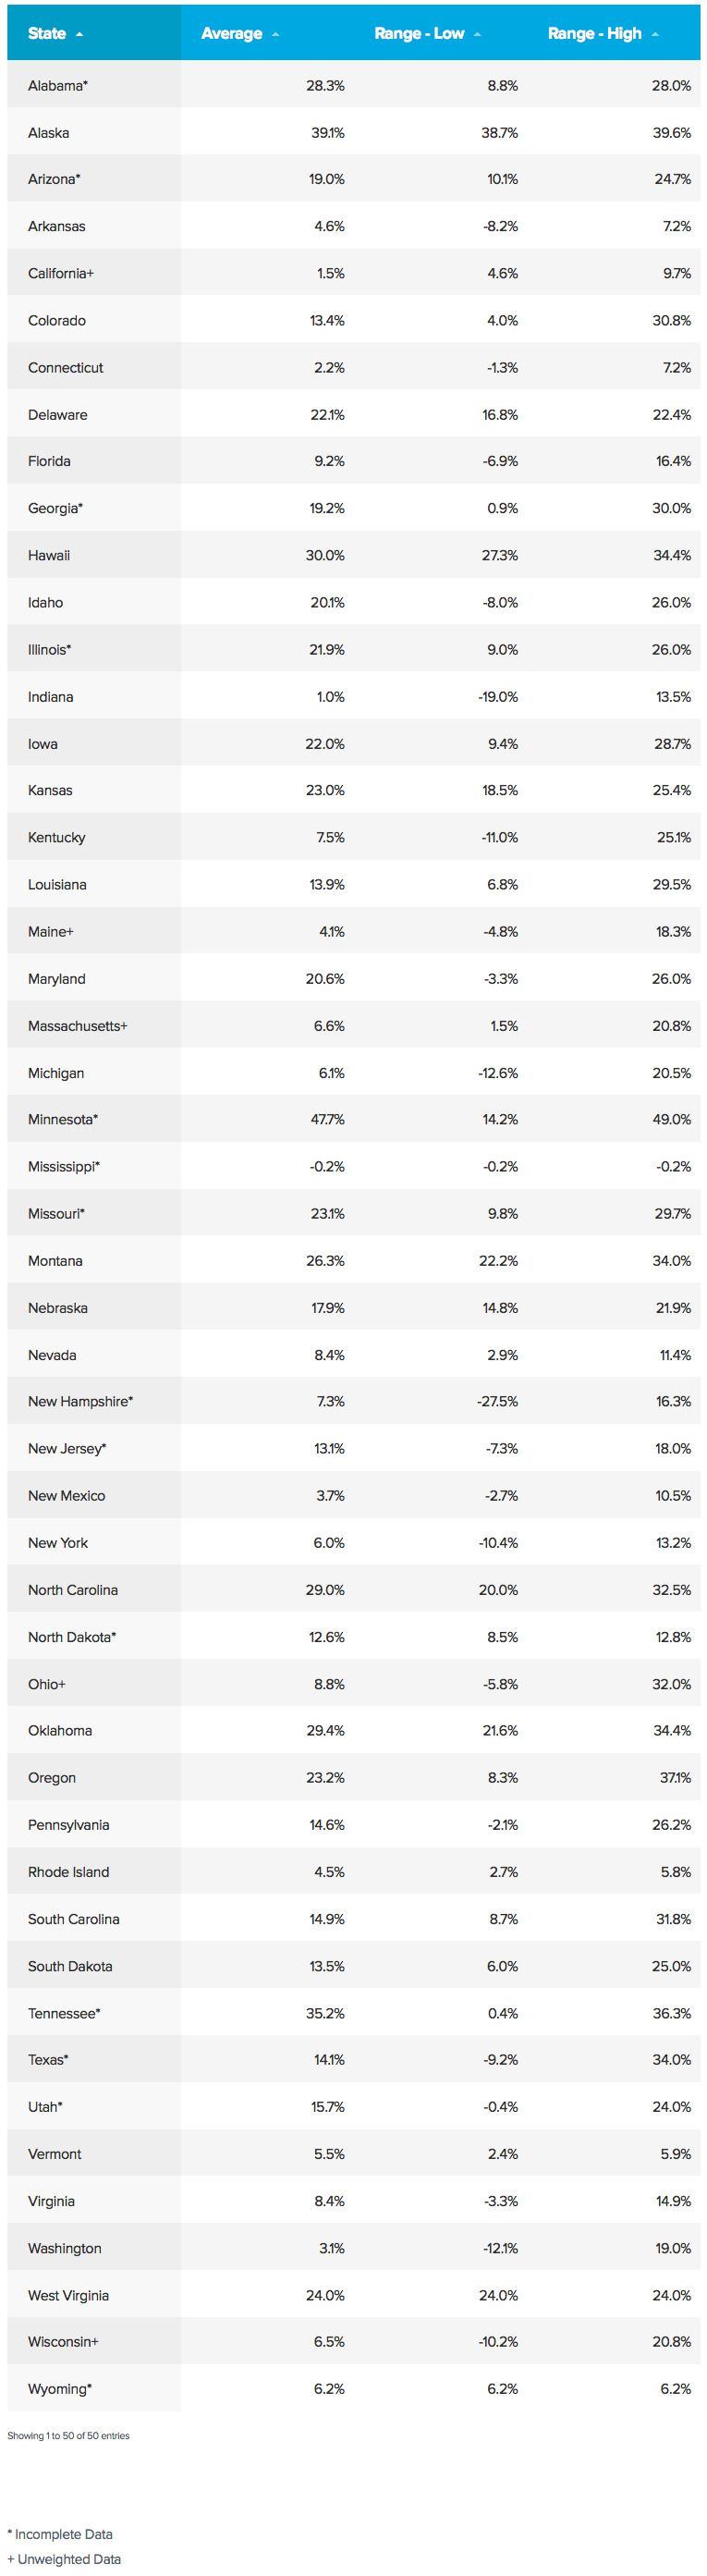 Find Out How Much Obamacare Rates Increased in Your State